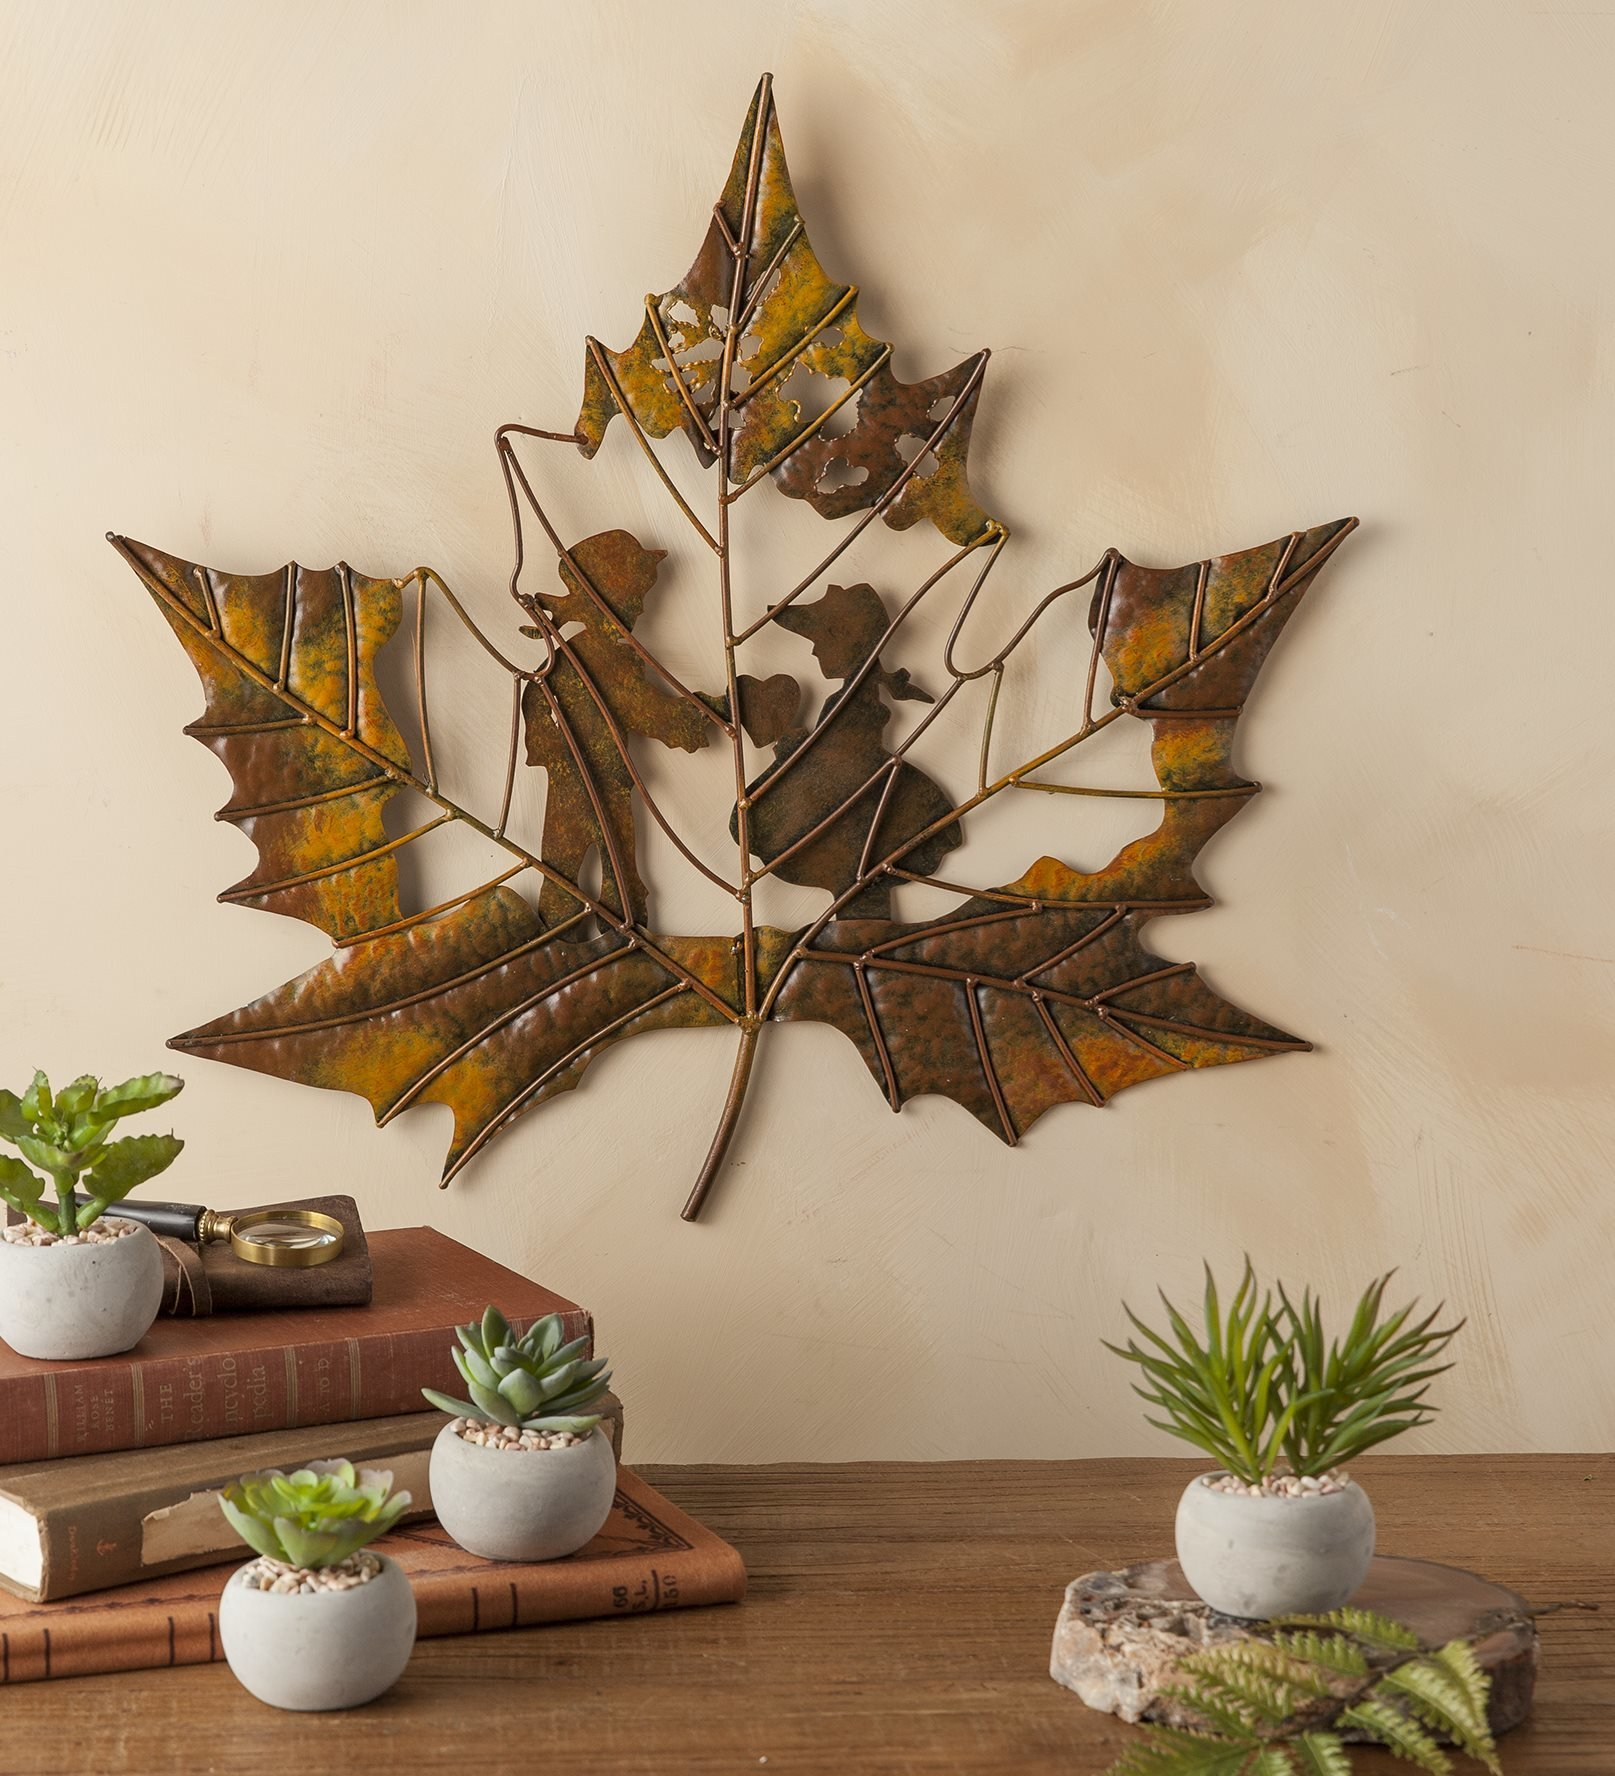 Wayfair Intended For Metal Leaf Wall Decor By Red Barrel Studio (View 15 of 20)